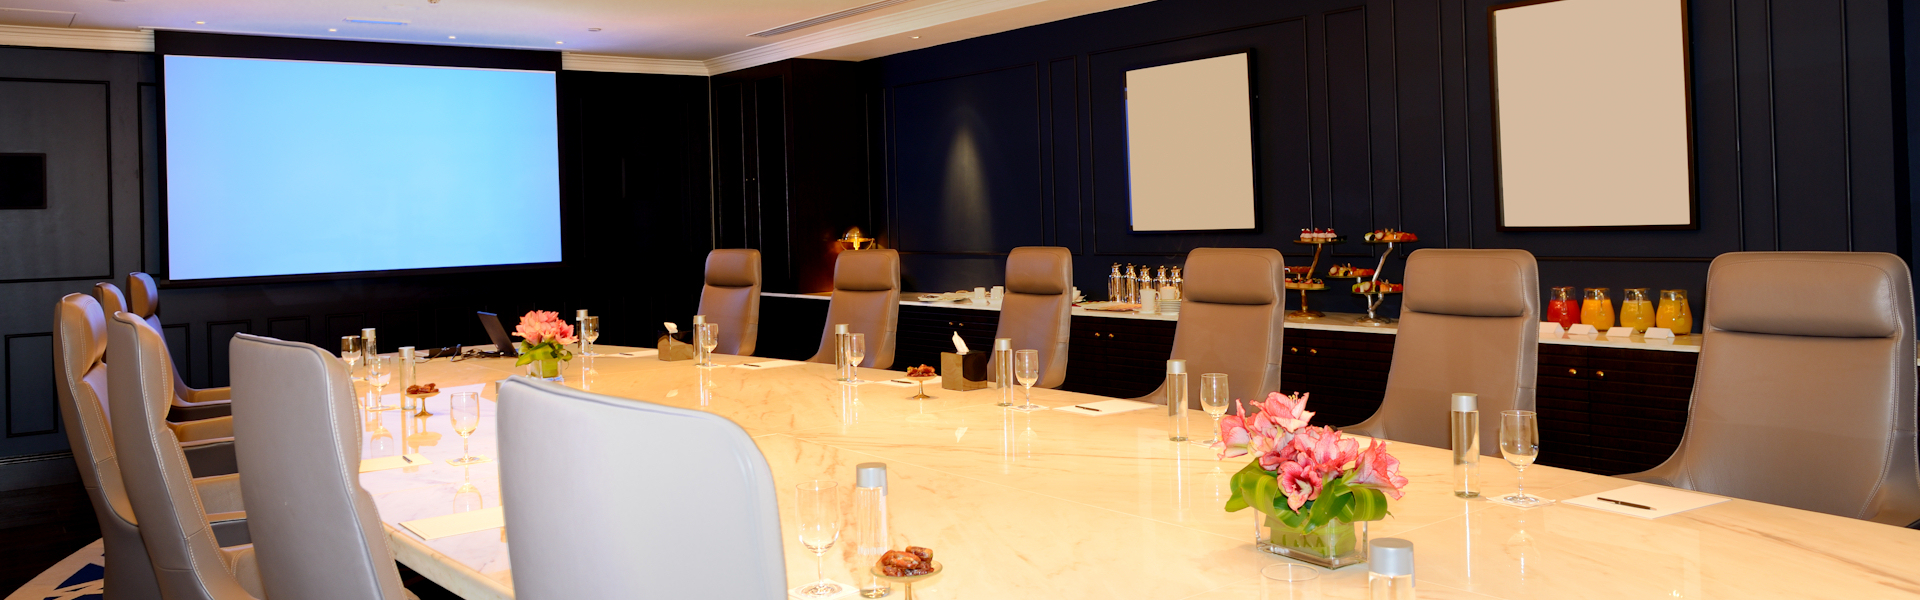 The meeting room interior at luxury hotel, Ras Al Khaimah, UAE